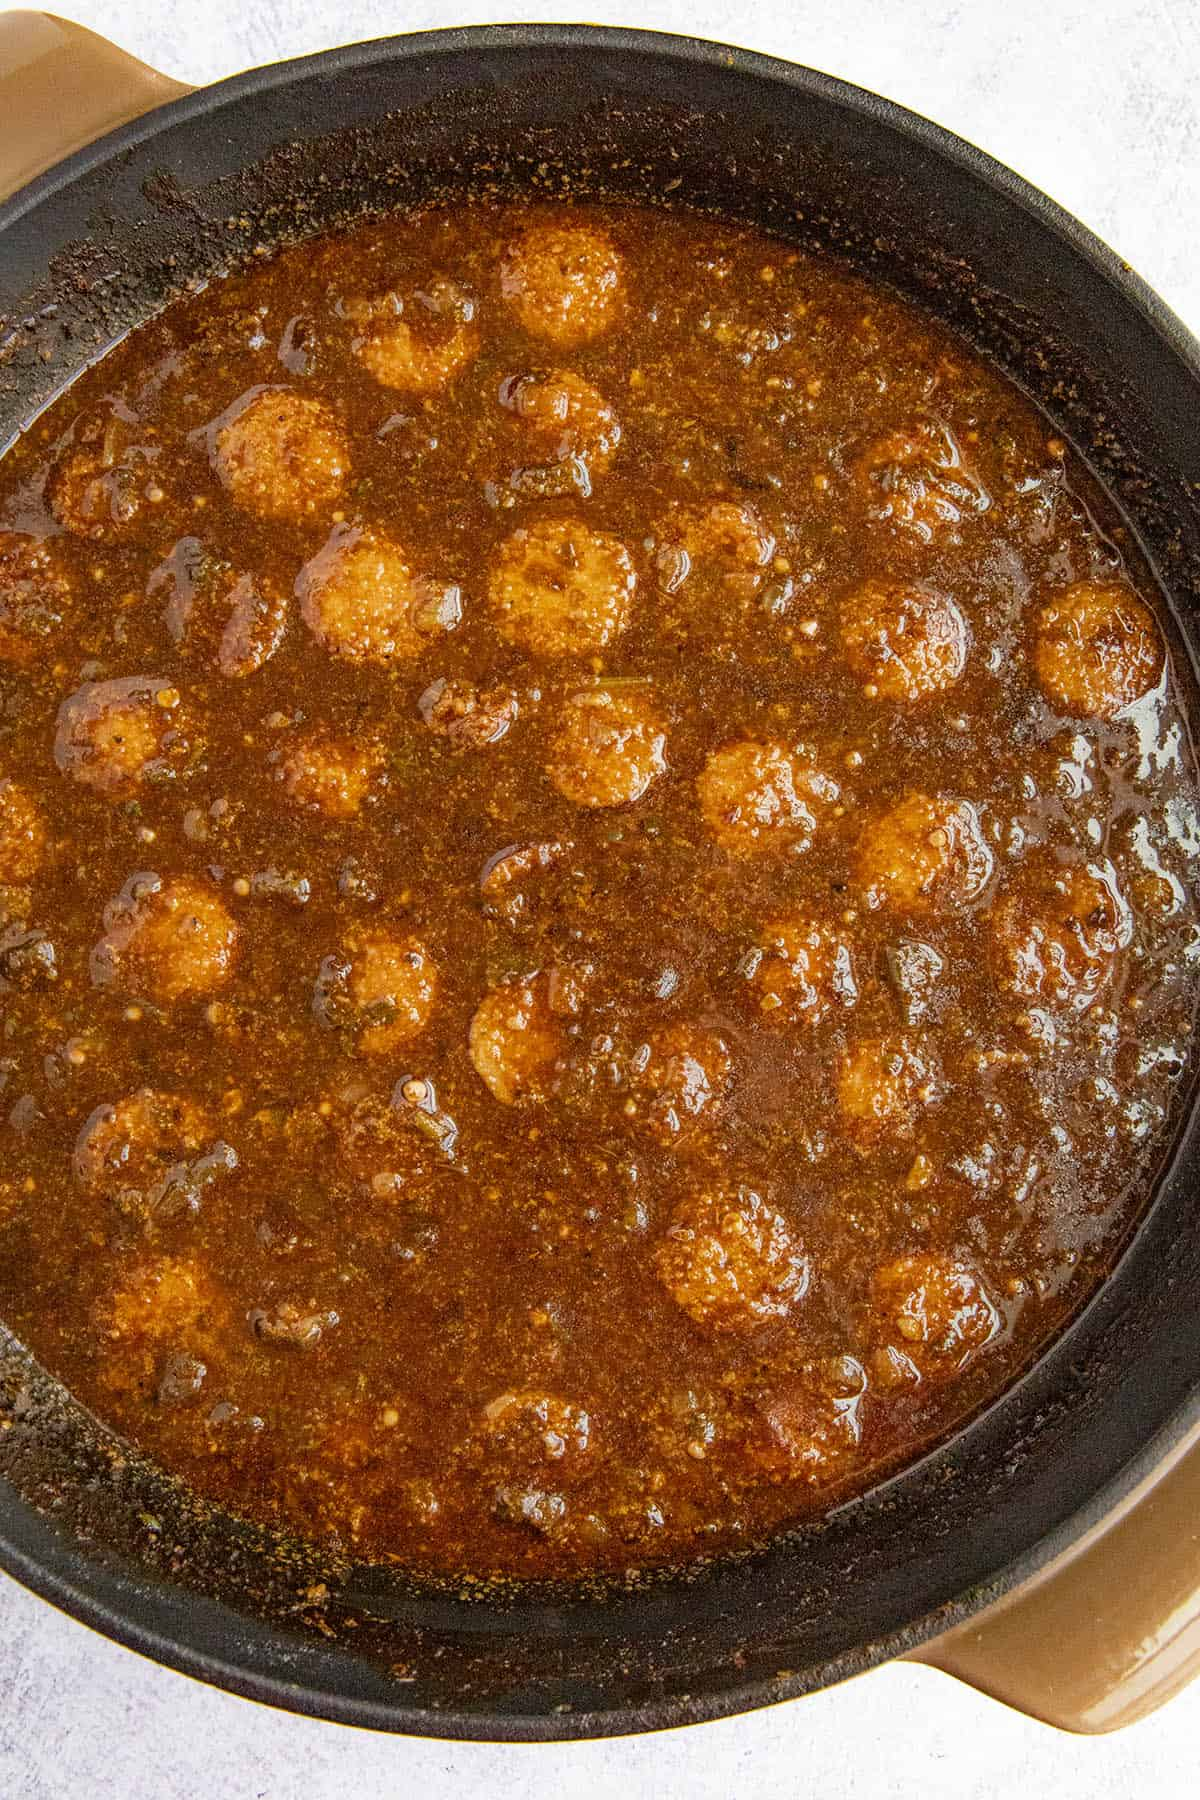 The final simmer of our Cajun Chicken and Sausage Gumbo in a pot